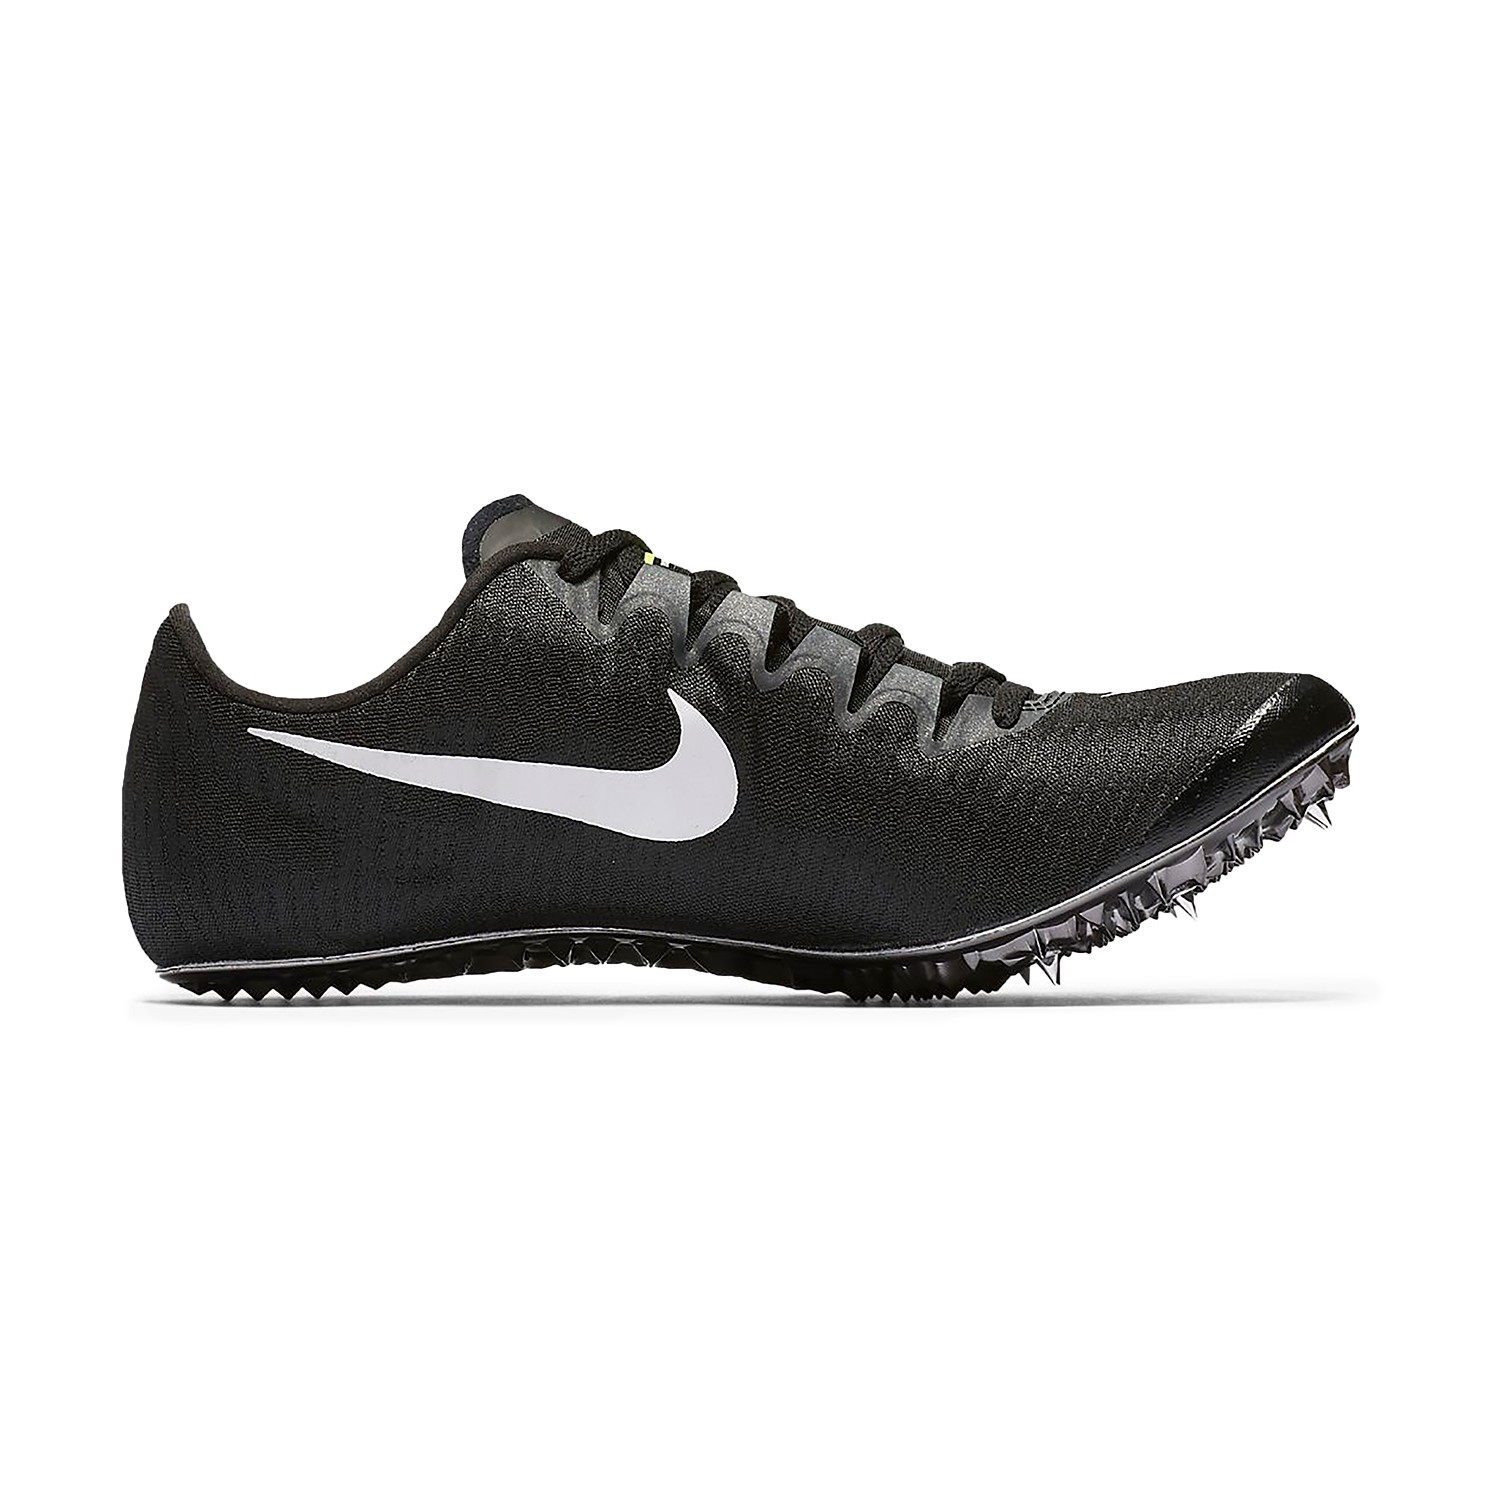 Nike Unisex Zoom Superfly Elite Track Spike Shoe